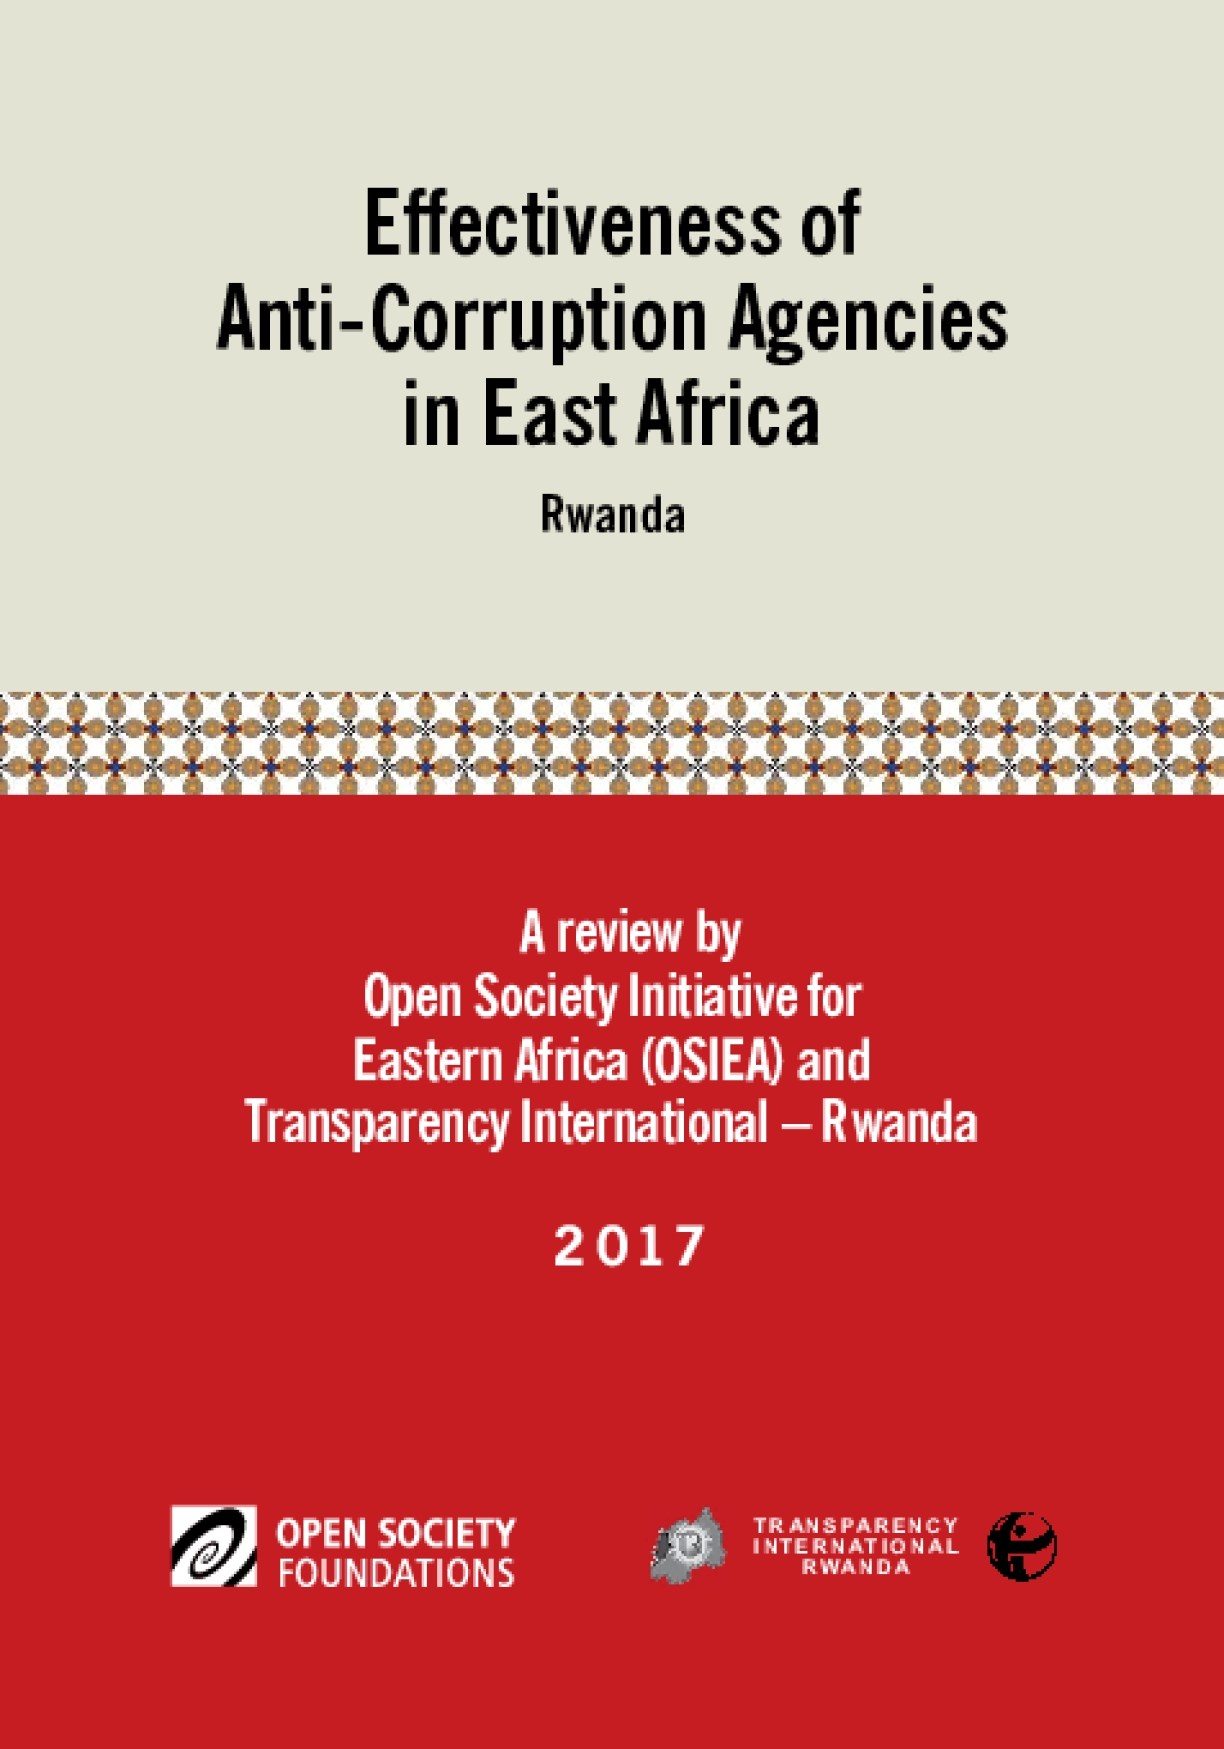 Effectiveness of Anticorruption Agencies in East Africa: Rwanda